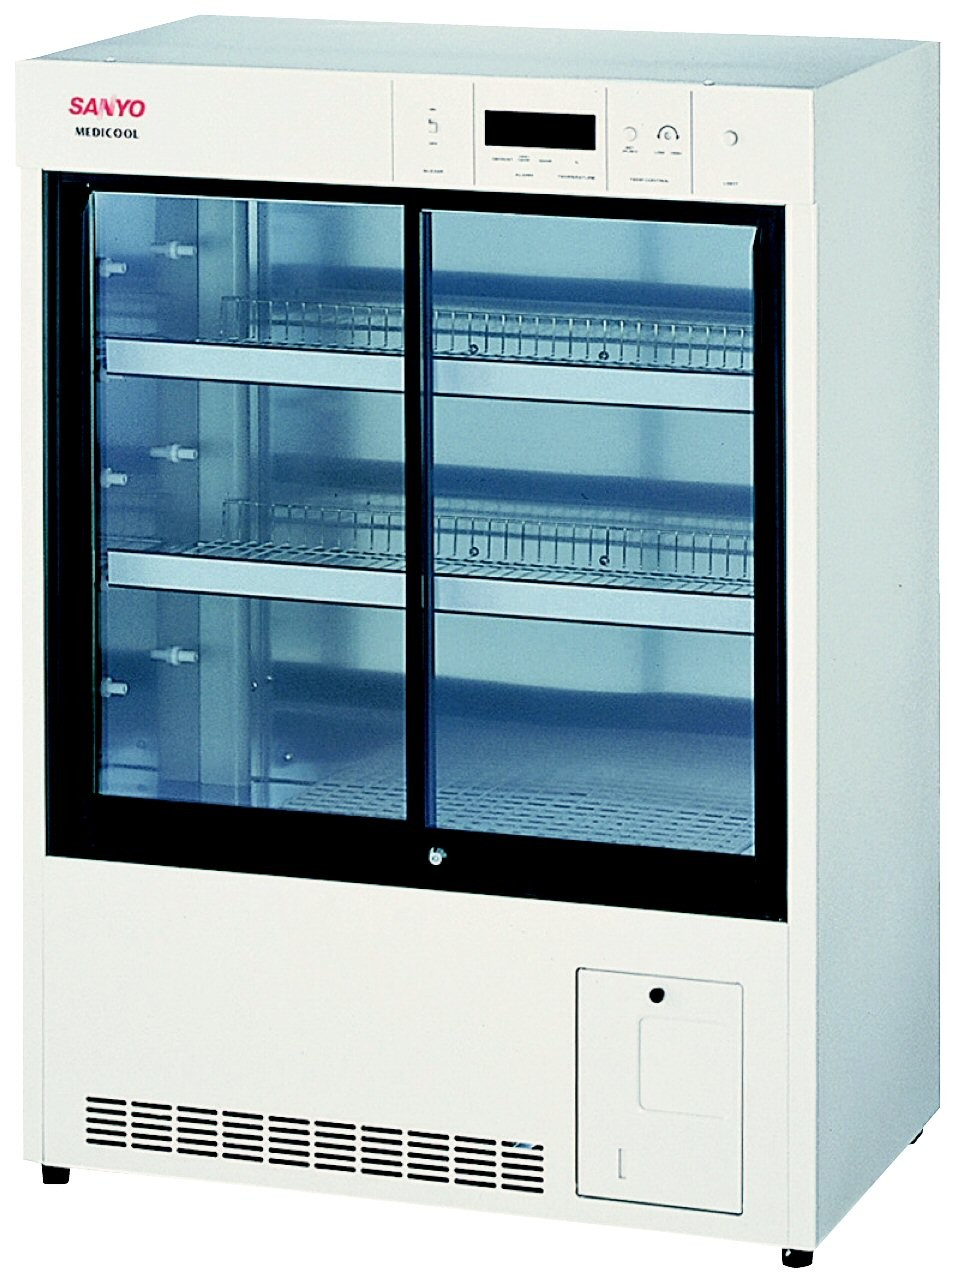 Sanyo Medical Pharmaceutical Refrigerator 158 Or 340 Litre